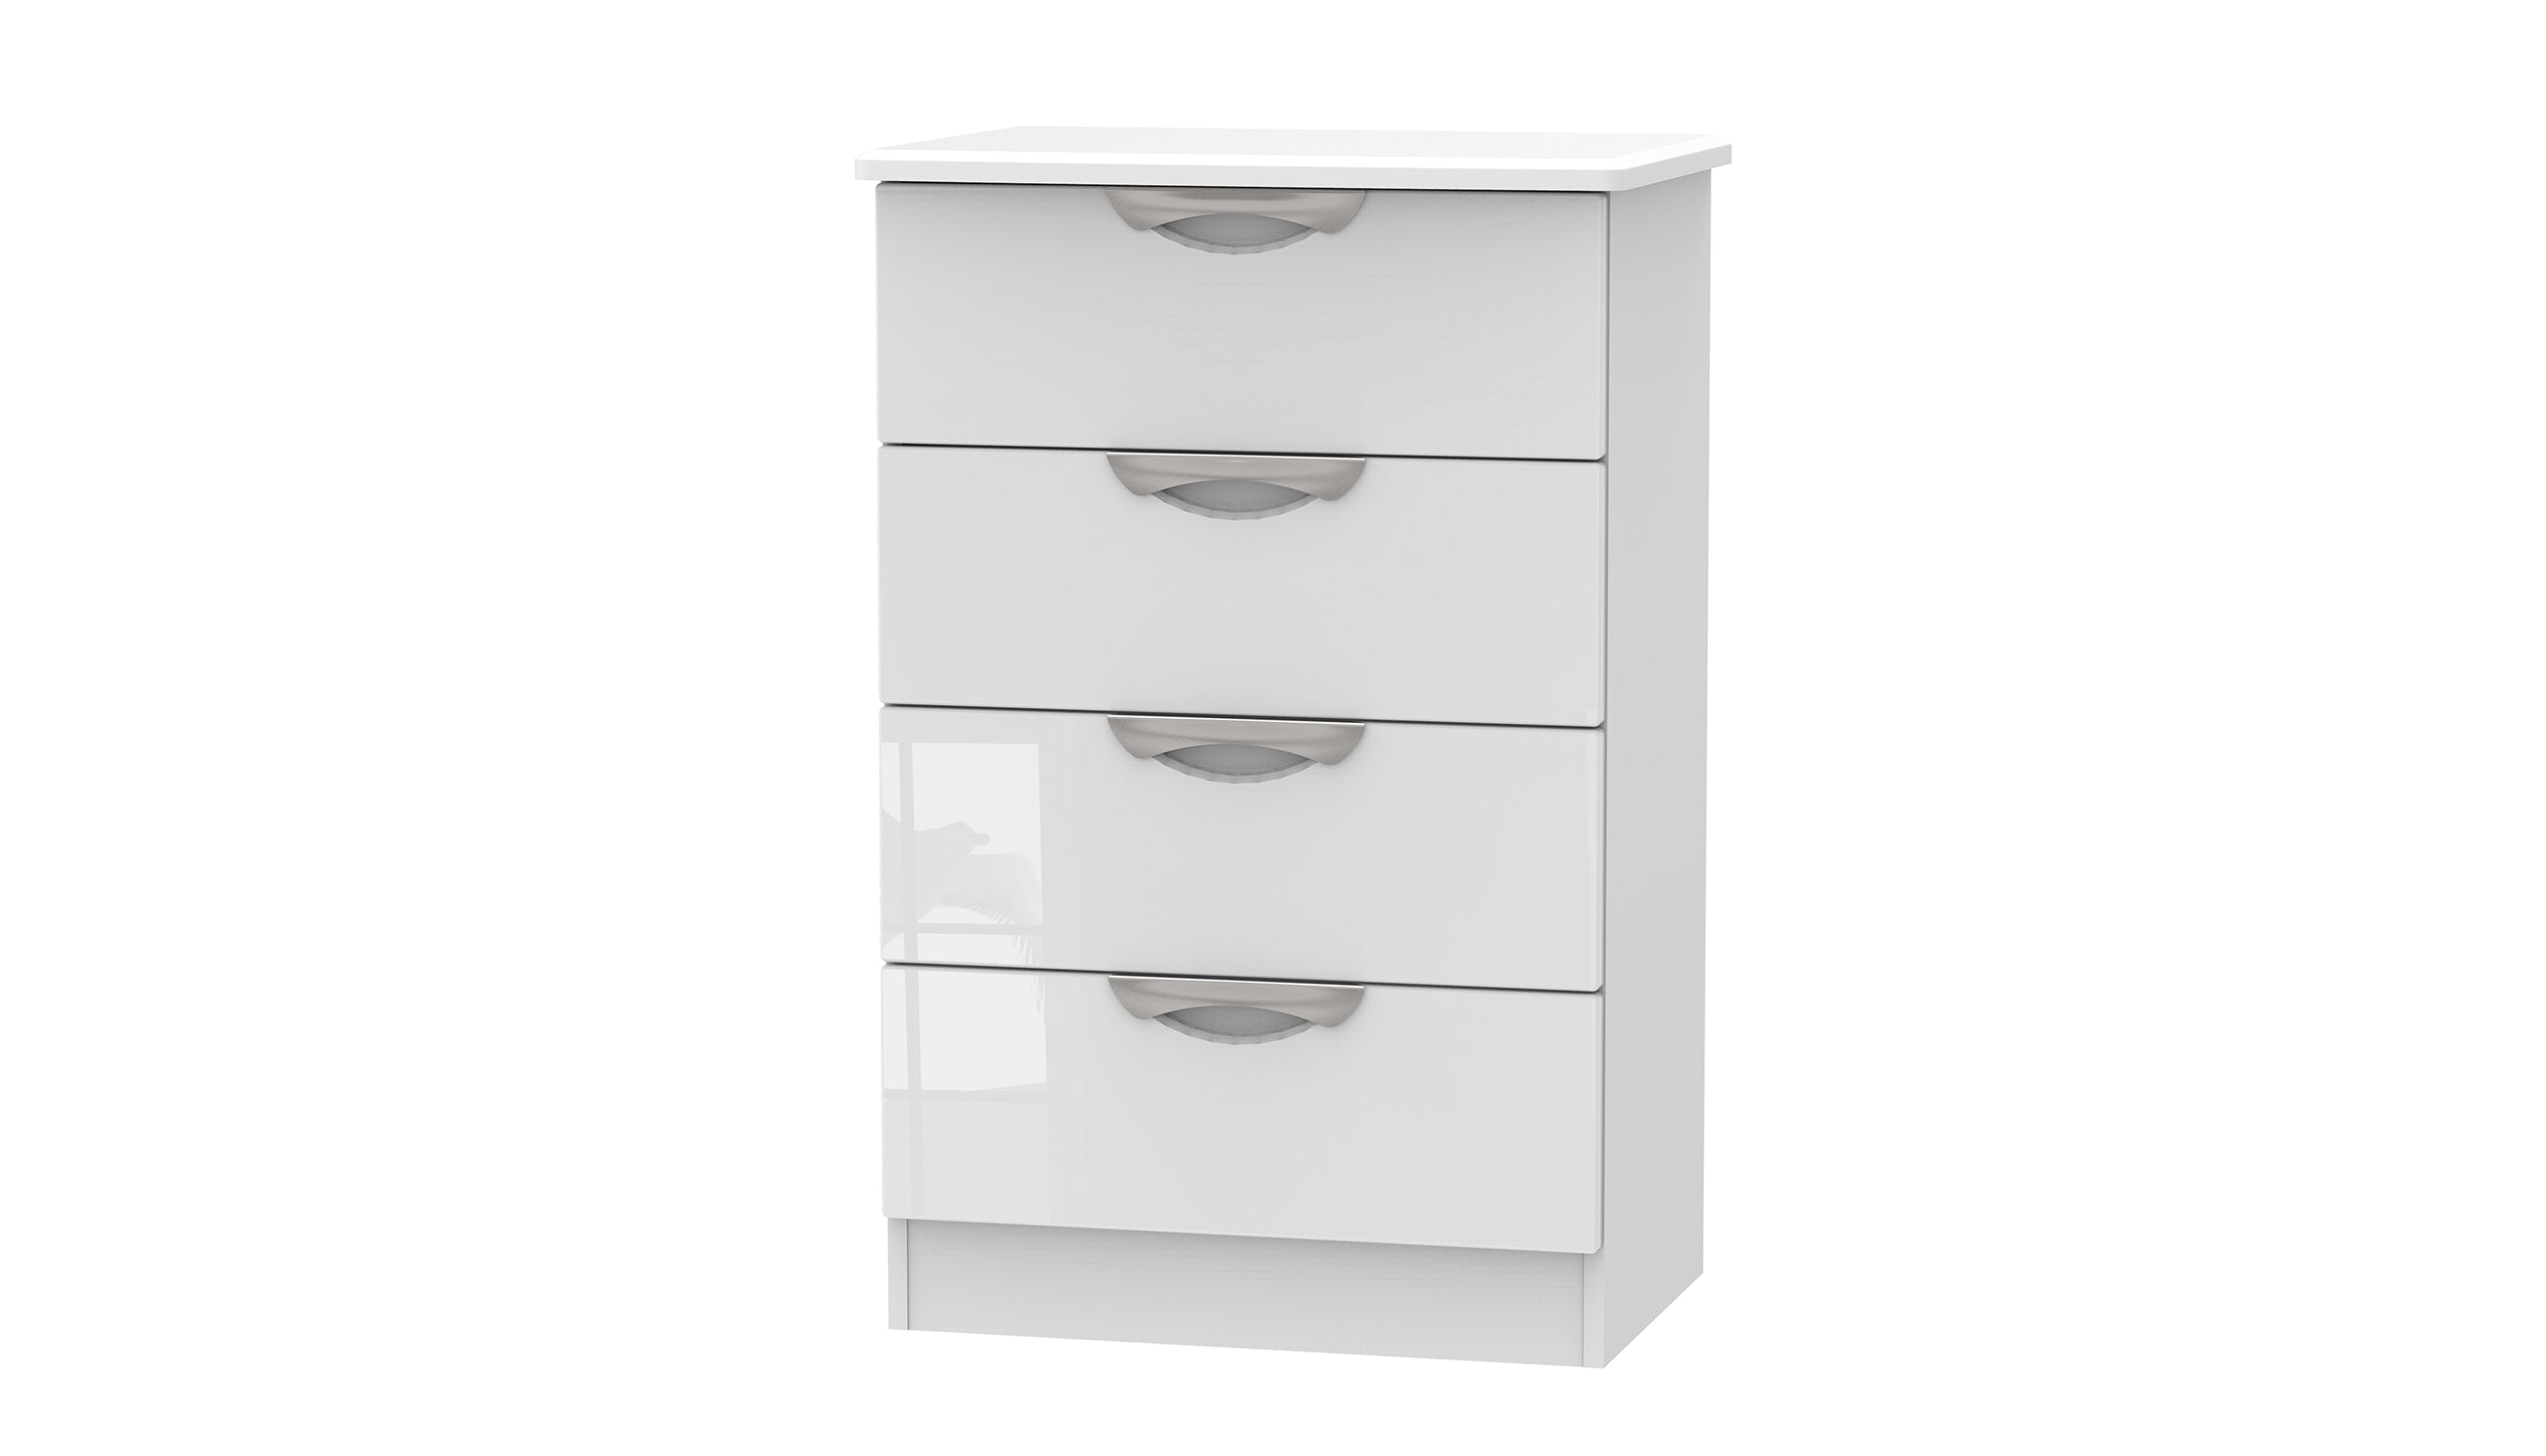 Moda 4 Drawer Midi Chest - AHF Furniture & Carpets